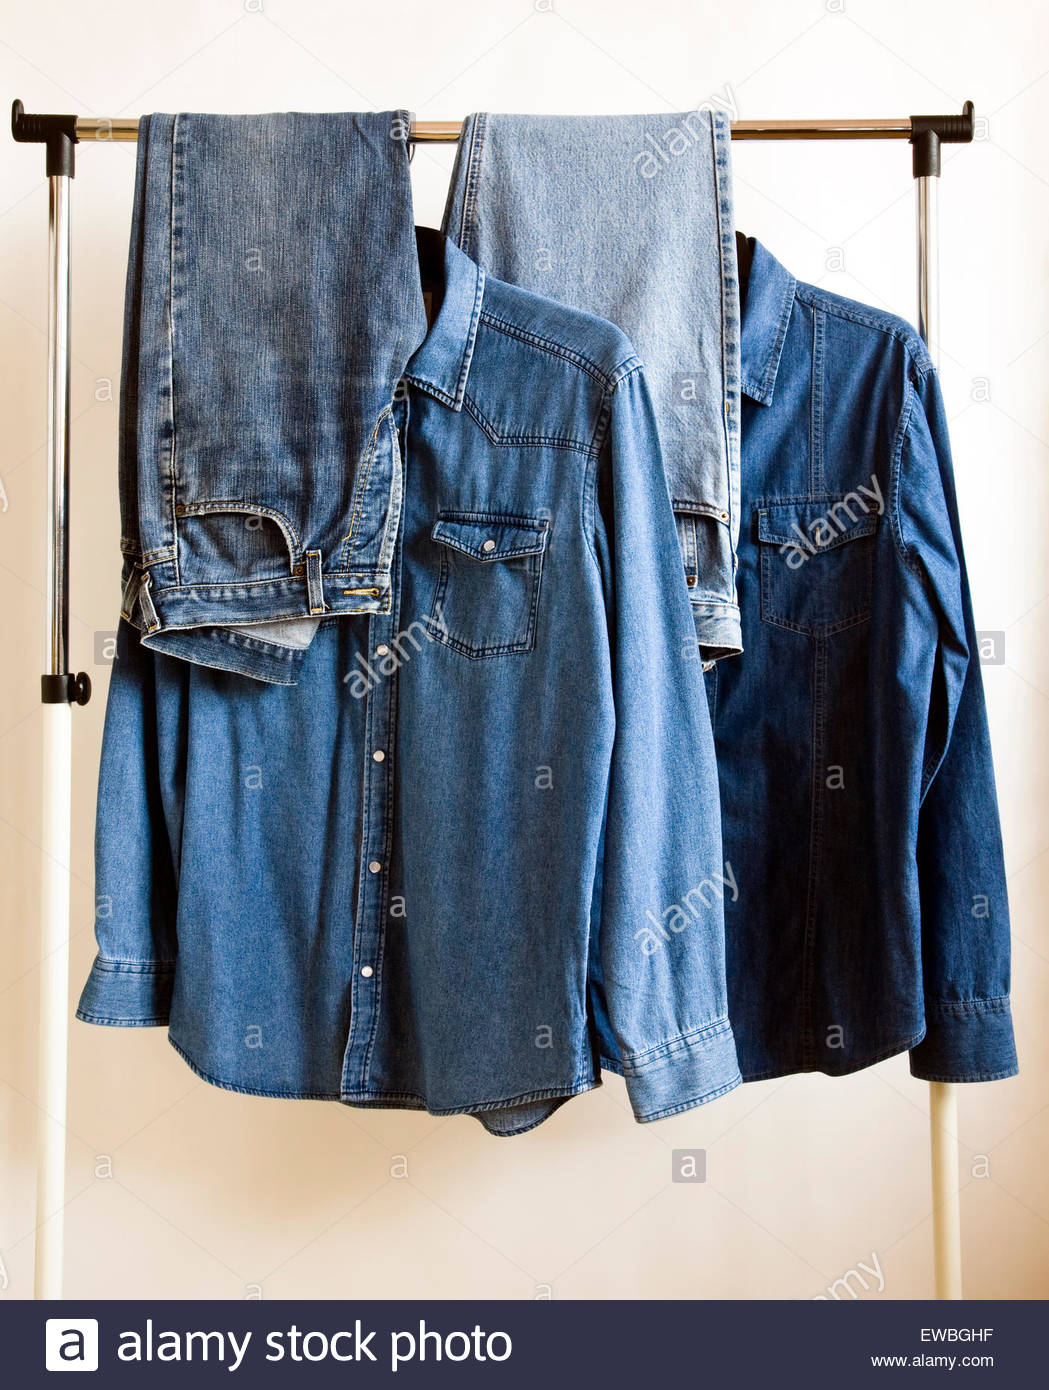 Selection of denim shirt and jeans on clothes hanging rail - Stock Image